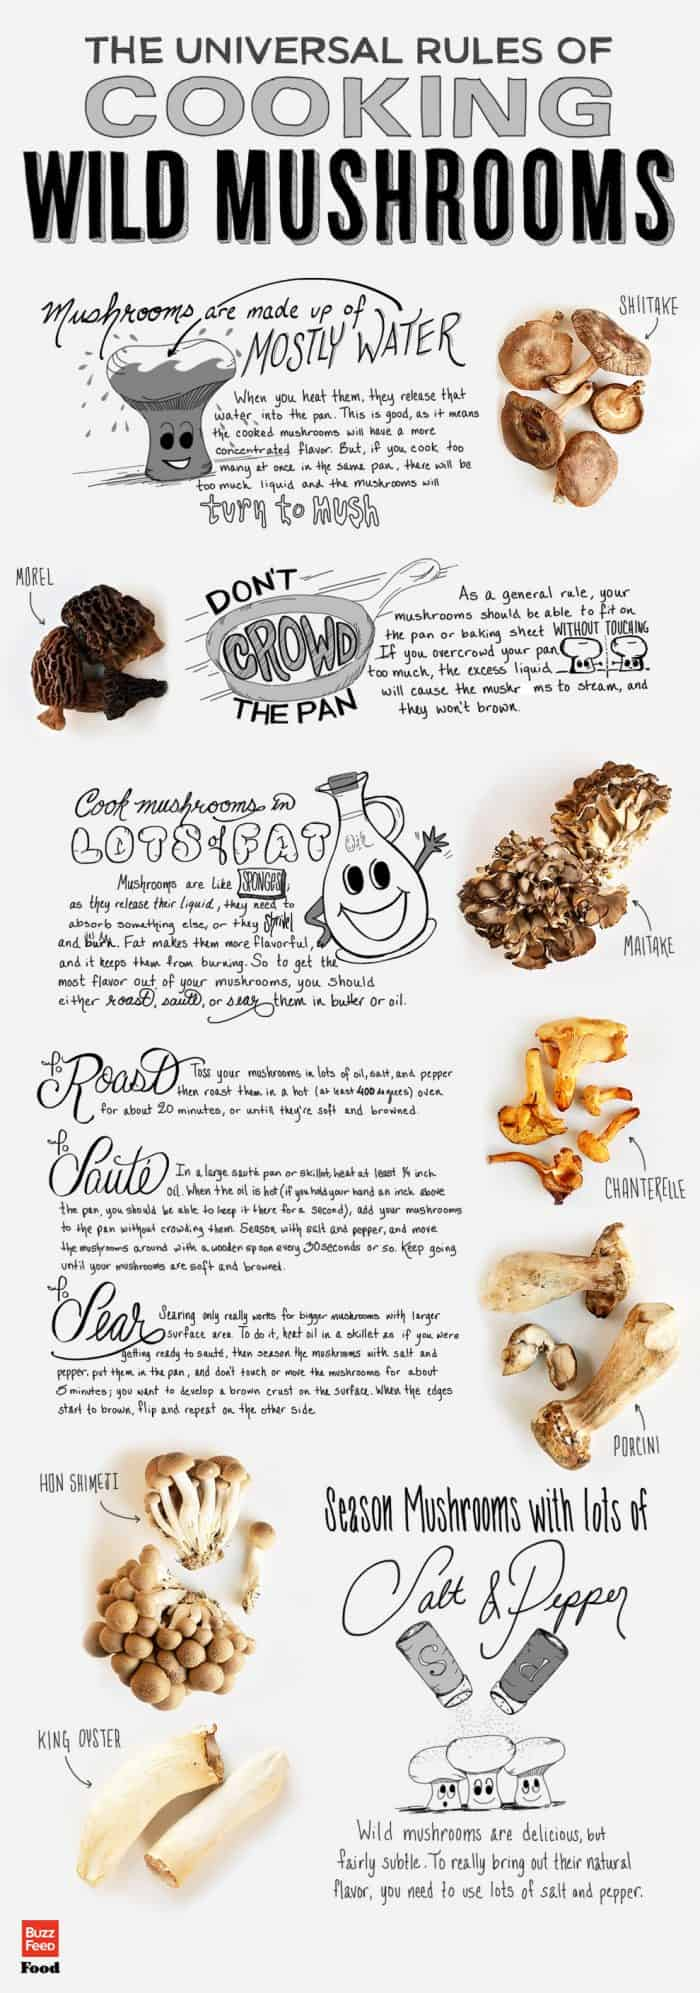 Rules of cooking wild mushrooms infographic